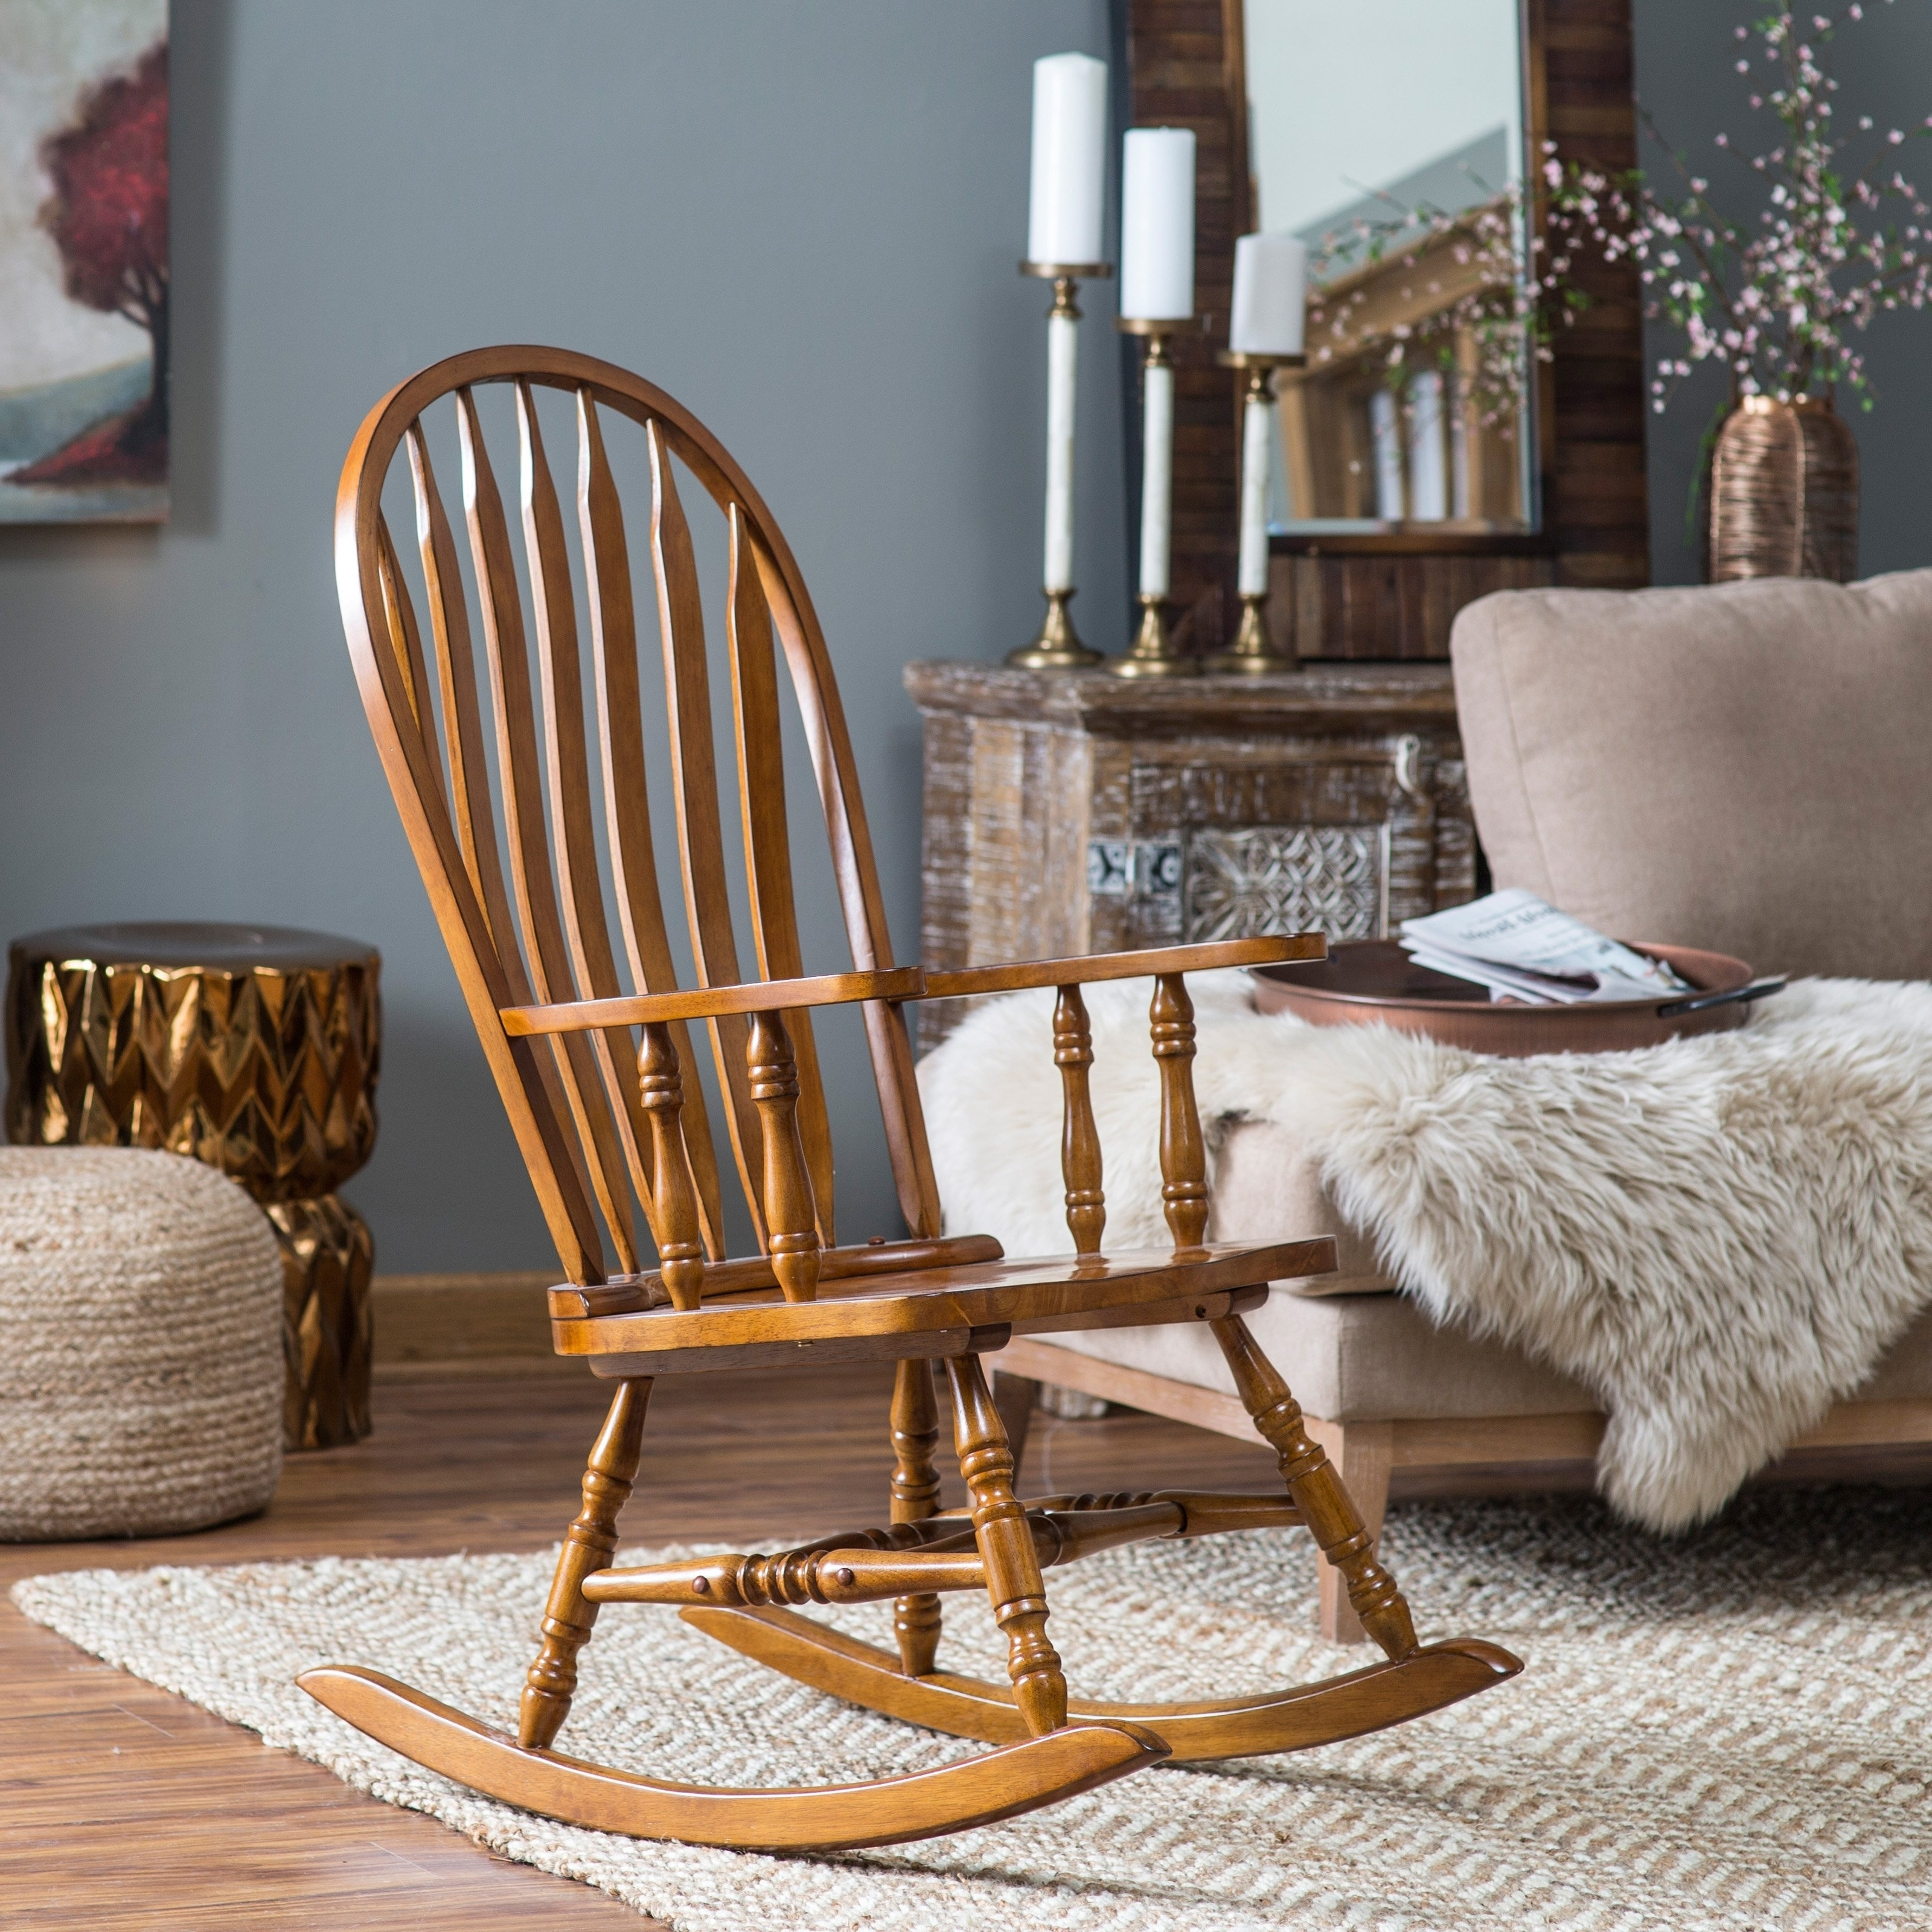 Living Room Rocking Chair Elegant Benefit Rocking Chairs For 2017 Rocking Chairs For Living Room (View 4 of 15)